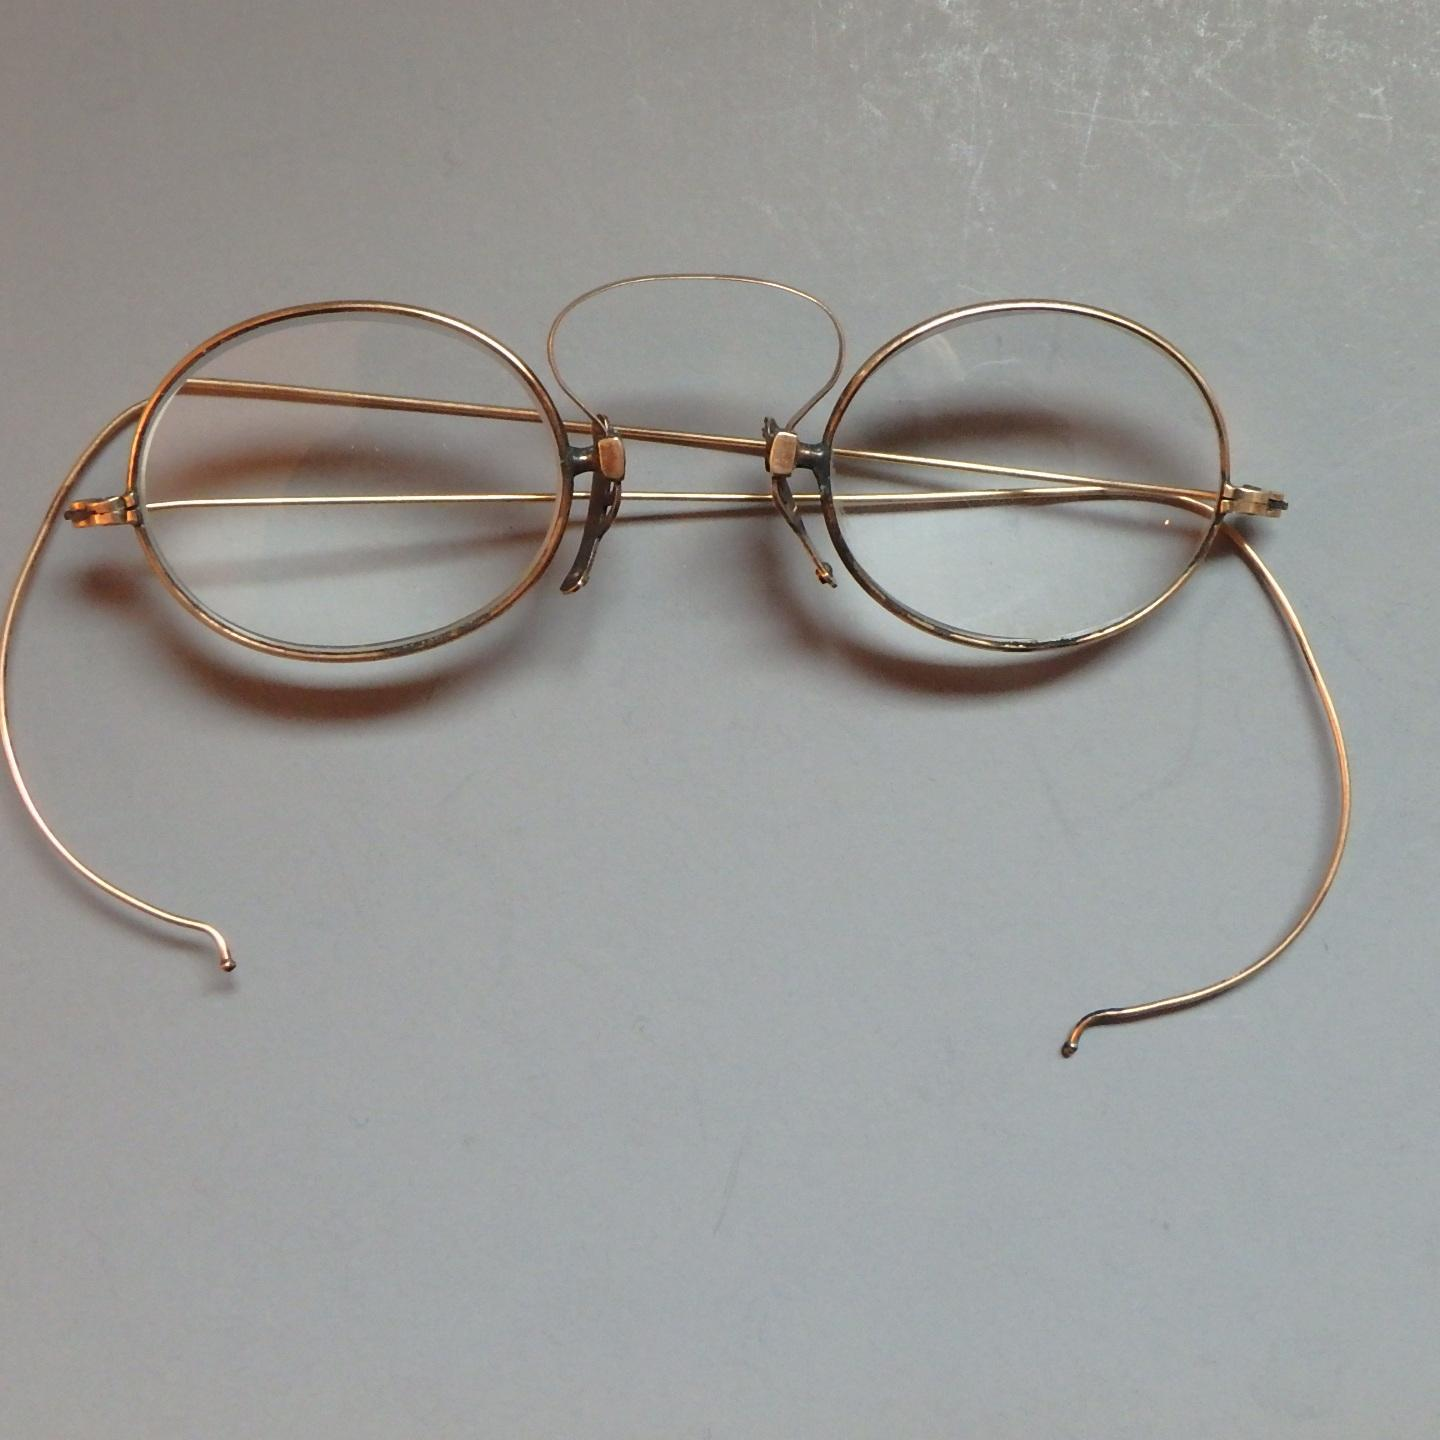 10k Gold Eyeglass Frames : Antique 10k Yellow Gold Wire-Rimmed Eyeglasses from ...